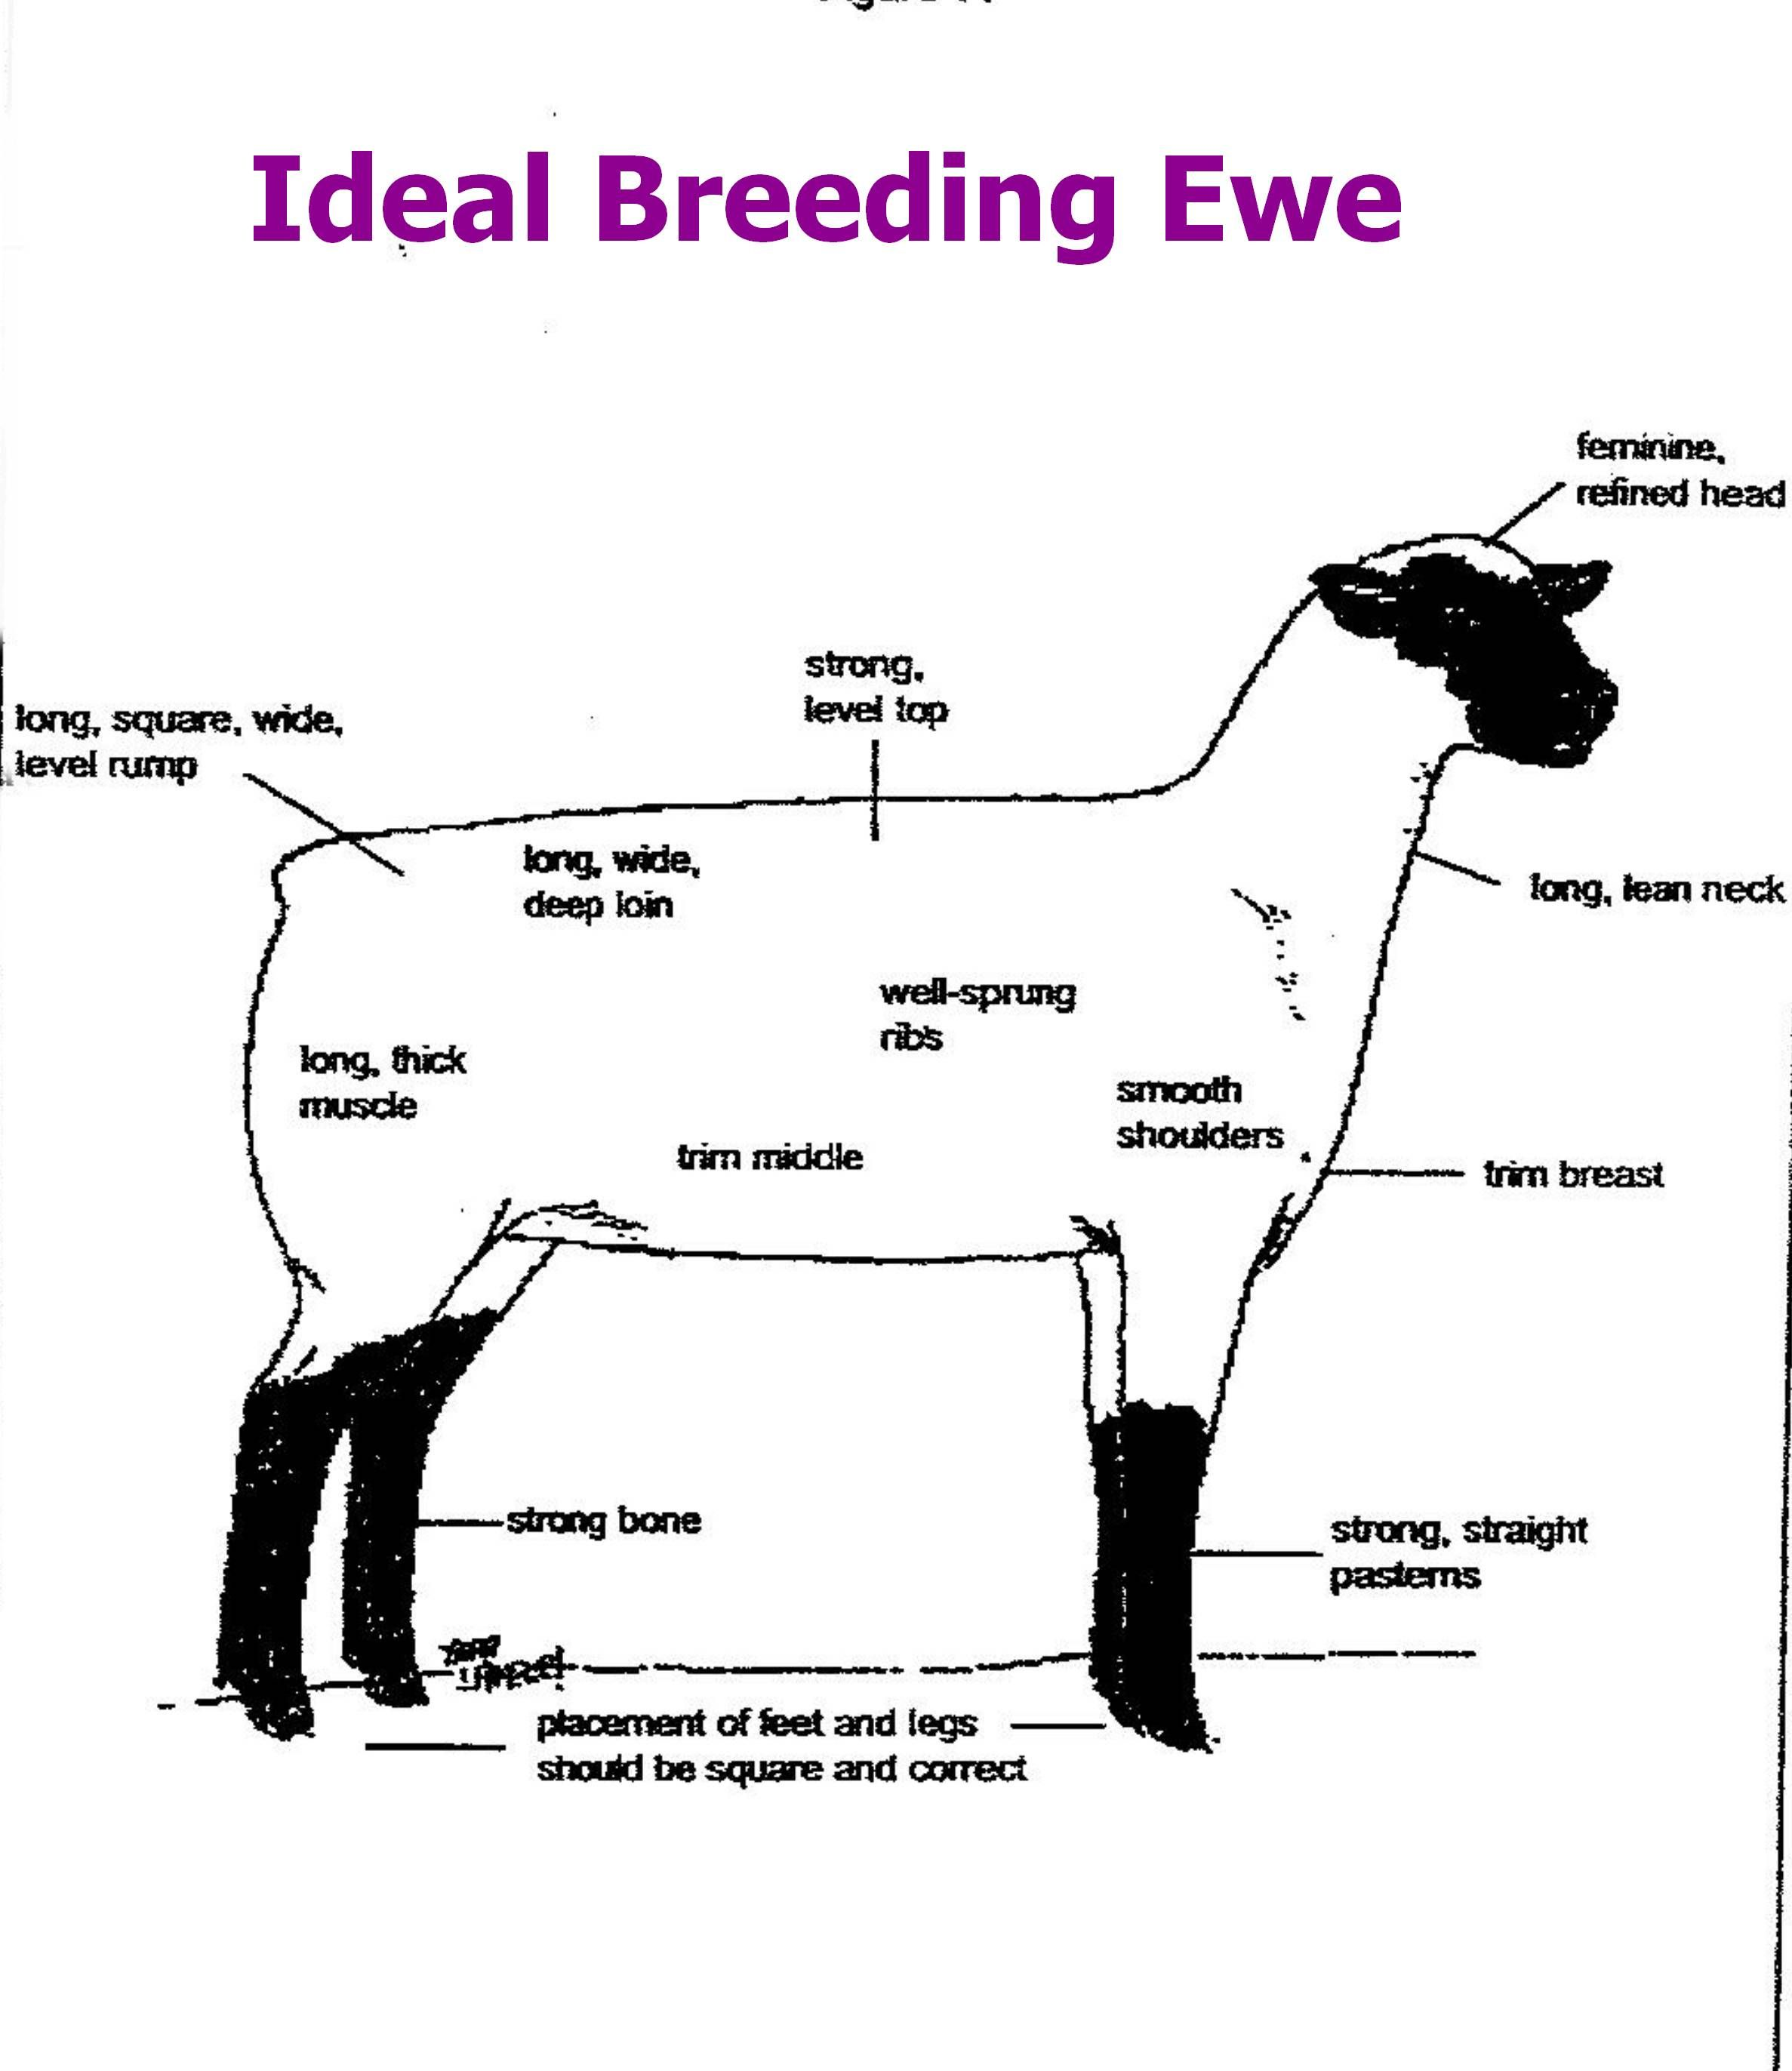 Pin By Nancy Noyes Ward On 4 H Judging Teams Agriculture Education And Project Meeting Stuff